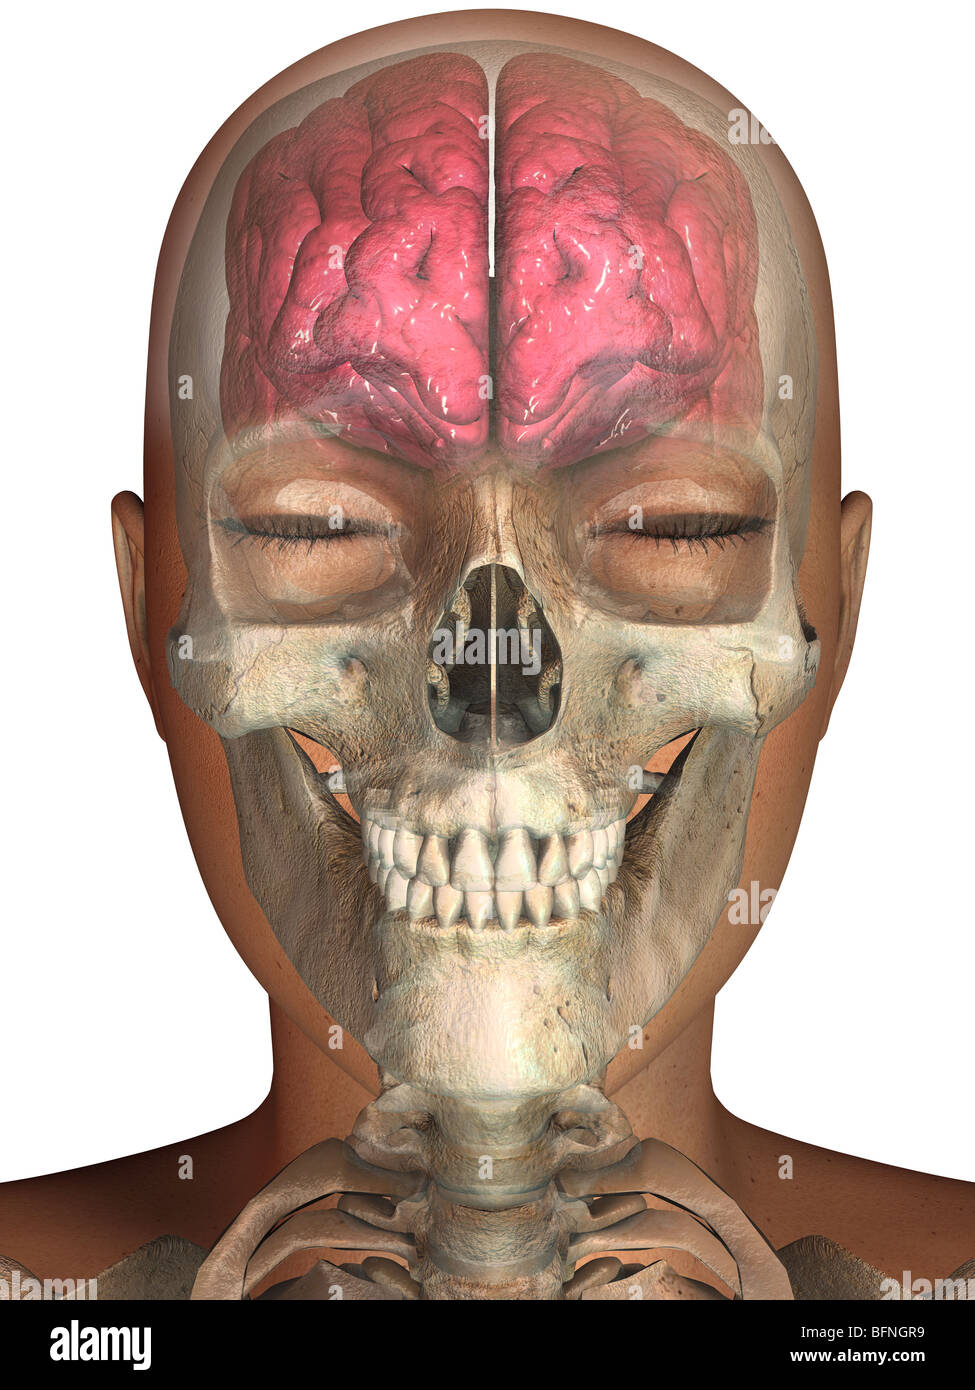 illustration of the human brain and skull seen within a transparent ...